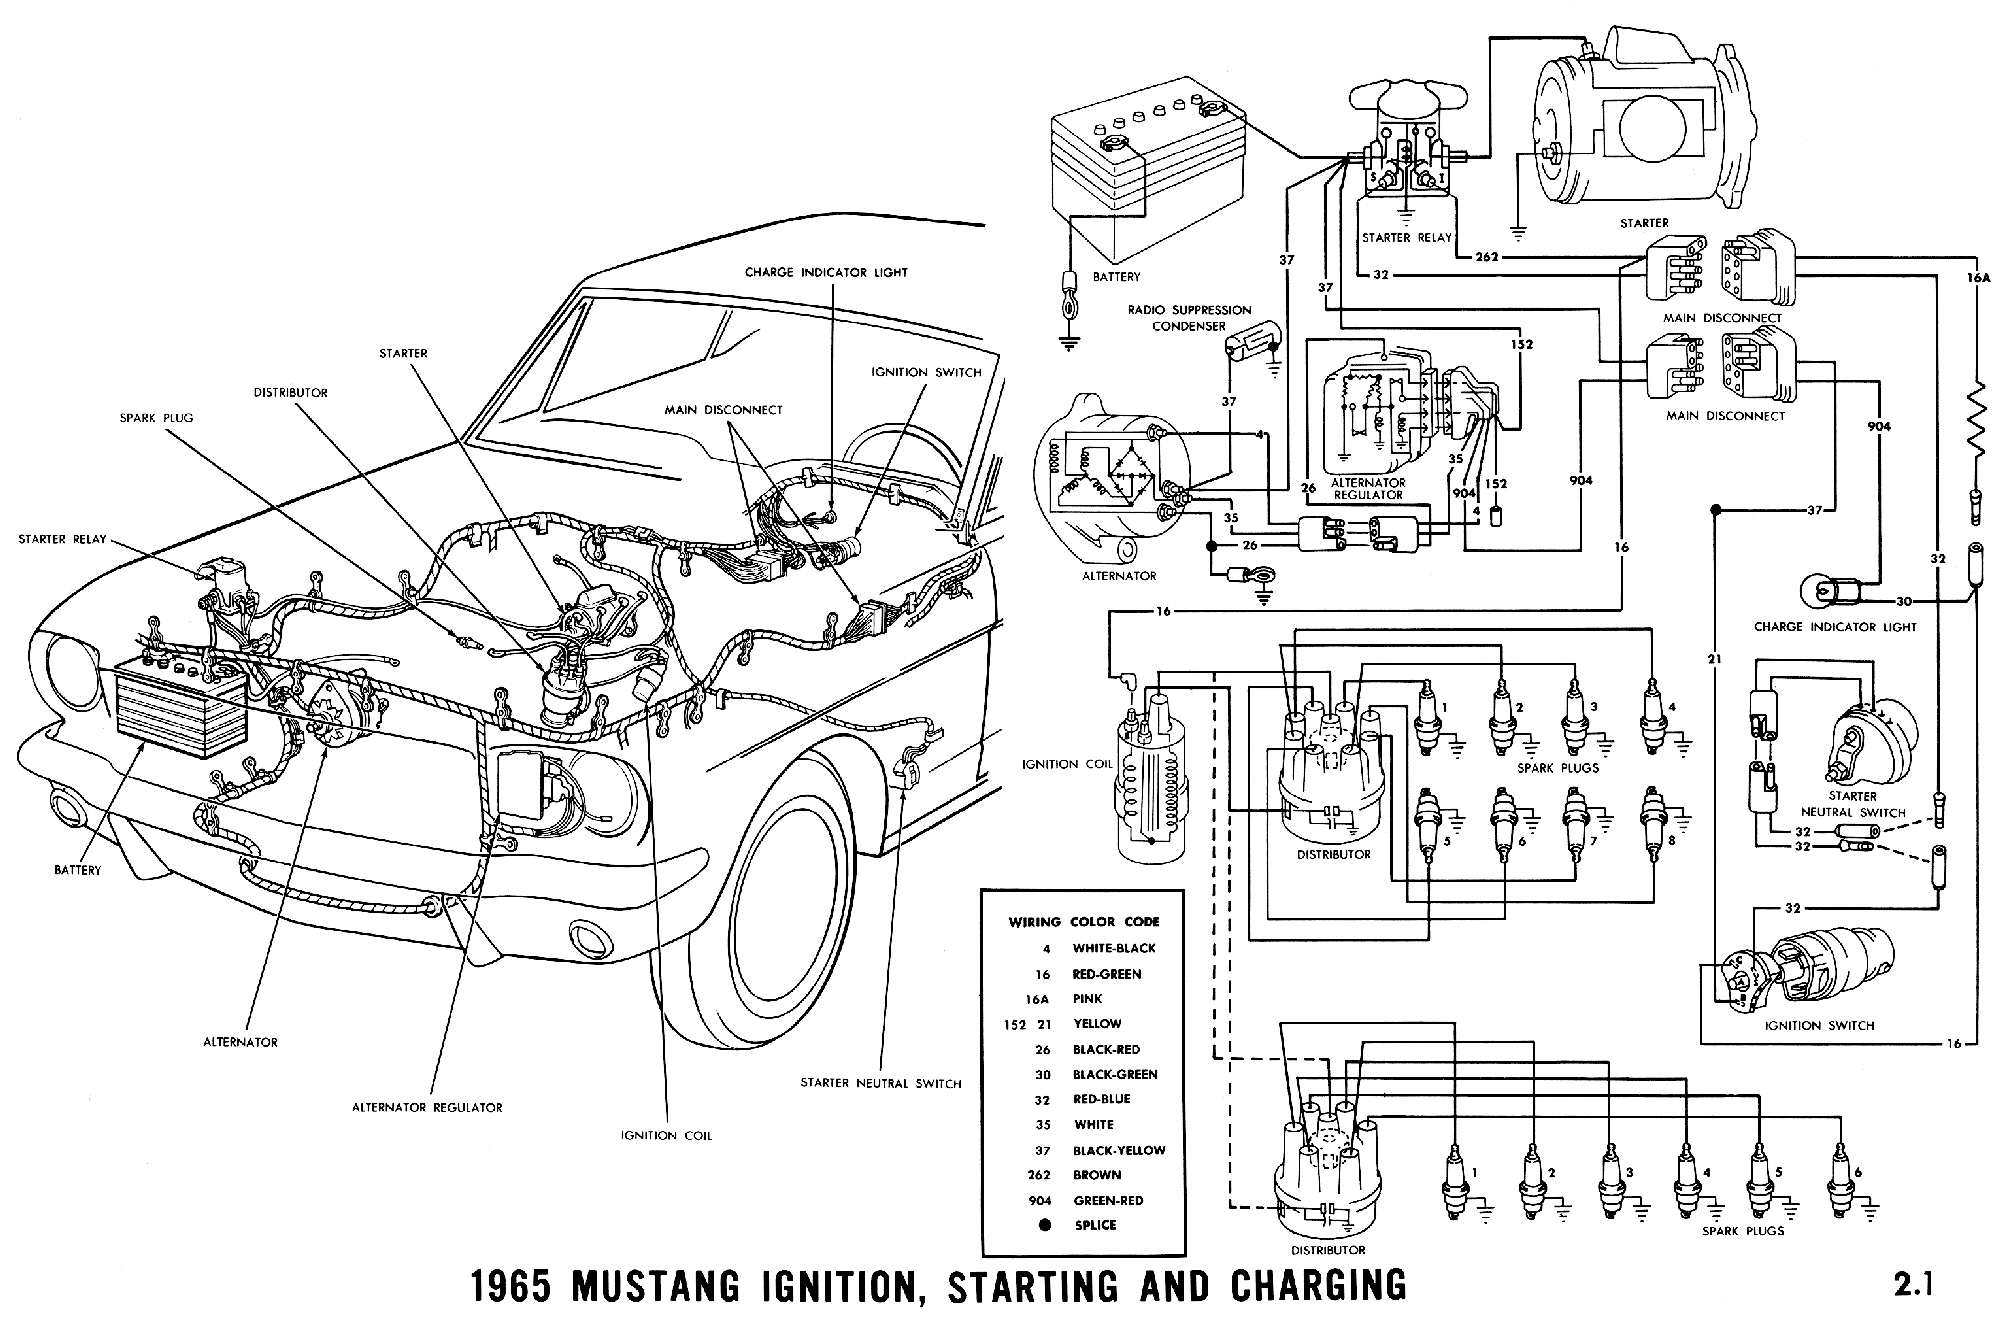 hight resolution of 1965 mustang wiring diagrams average joe restoration 1956 ford wiring schematic ford tractor ignition switch wiring